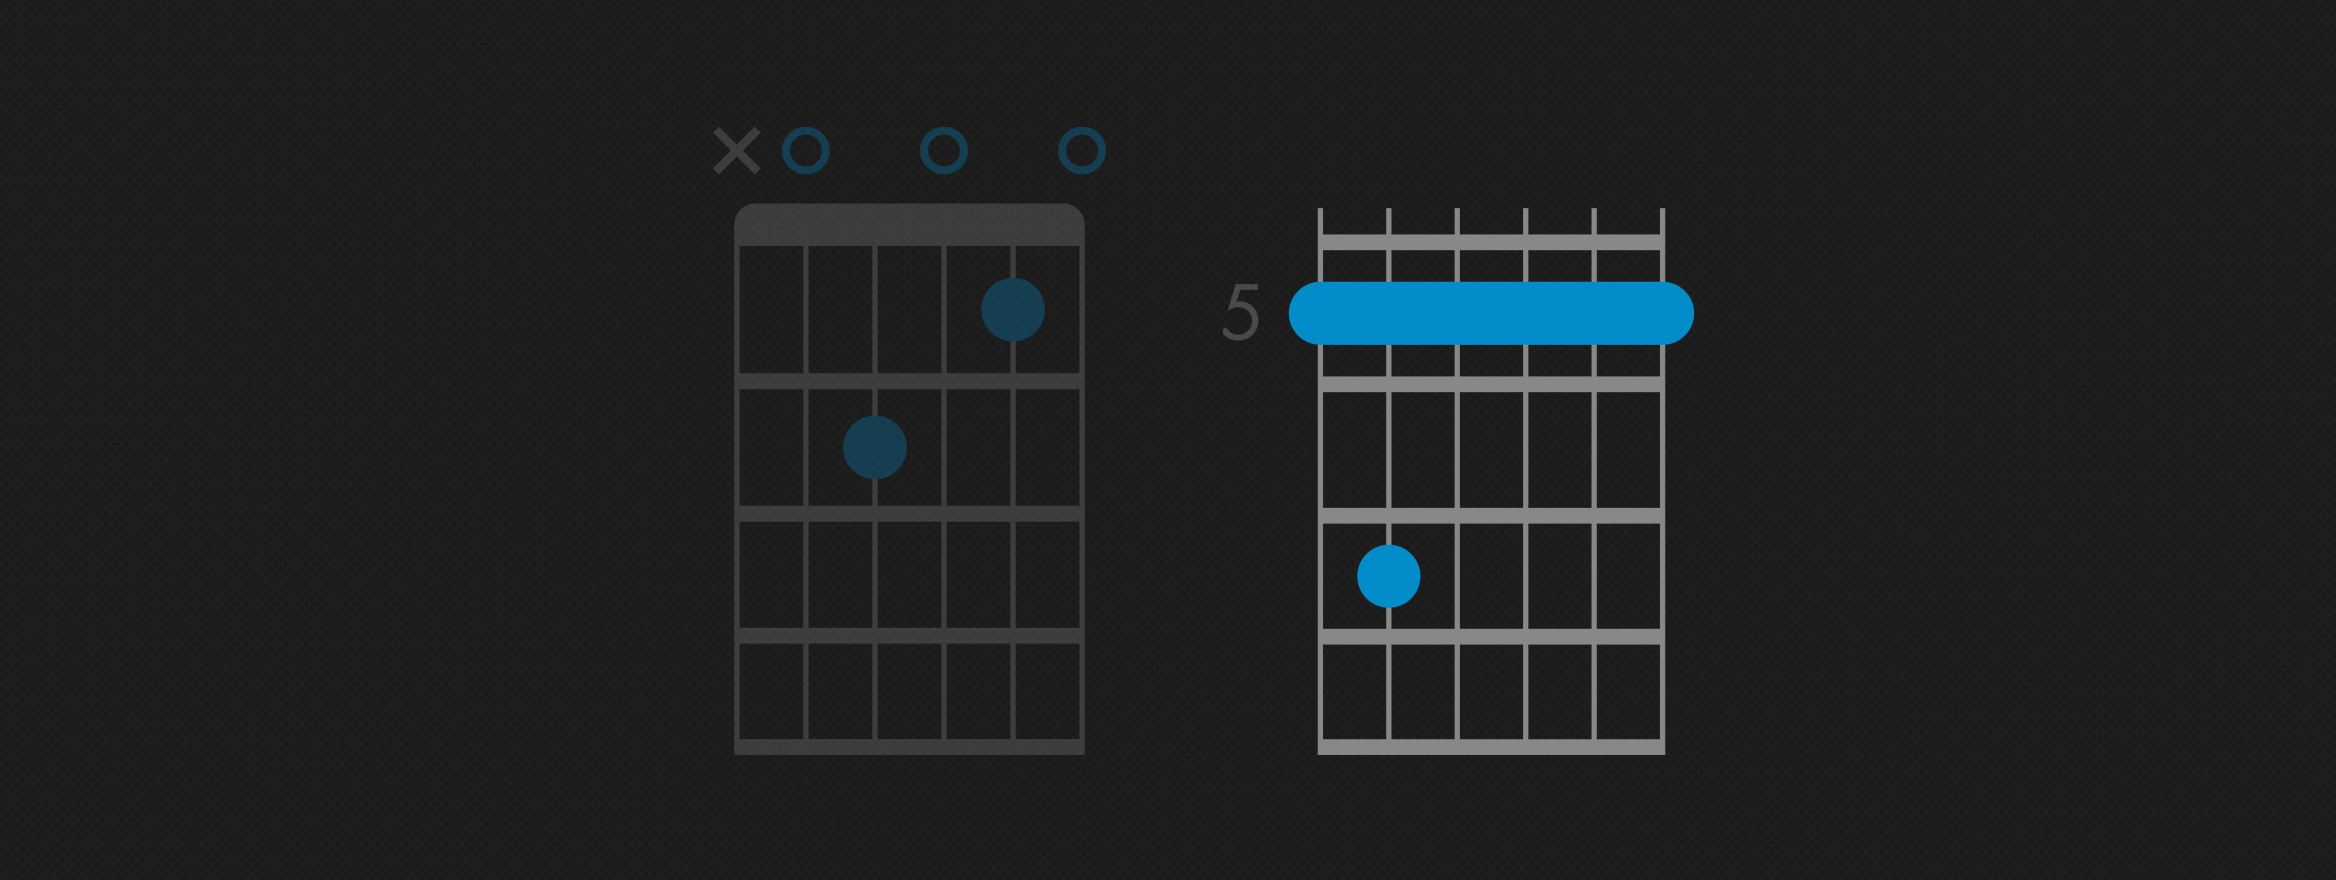 How To Play Am7 Chord On Guitar A Minor 7th Fender Play Am7/e, am7/g and am7/c are inversions of the chord. how to play am7 chord on guitar a